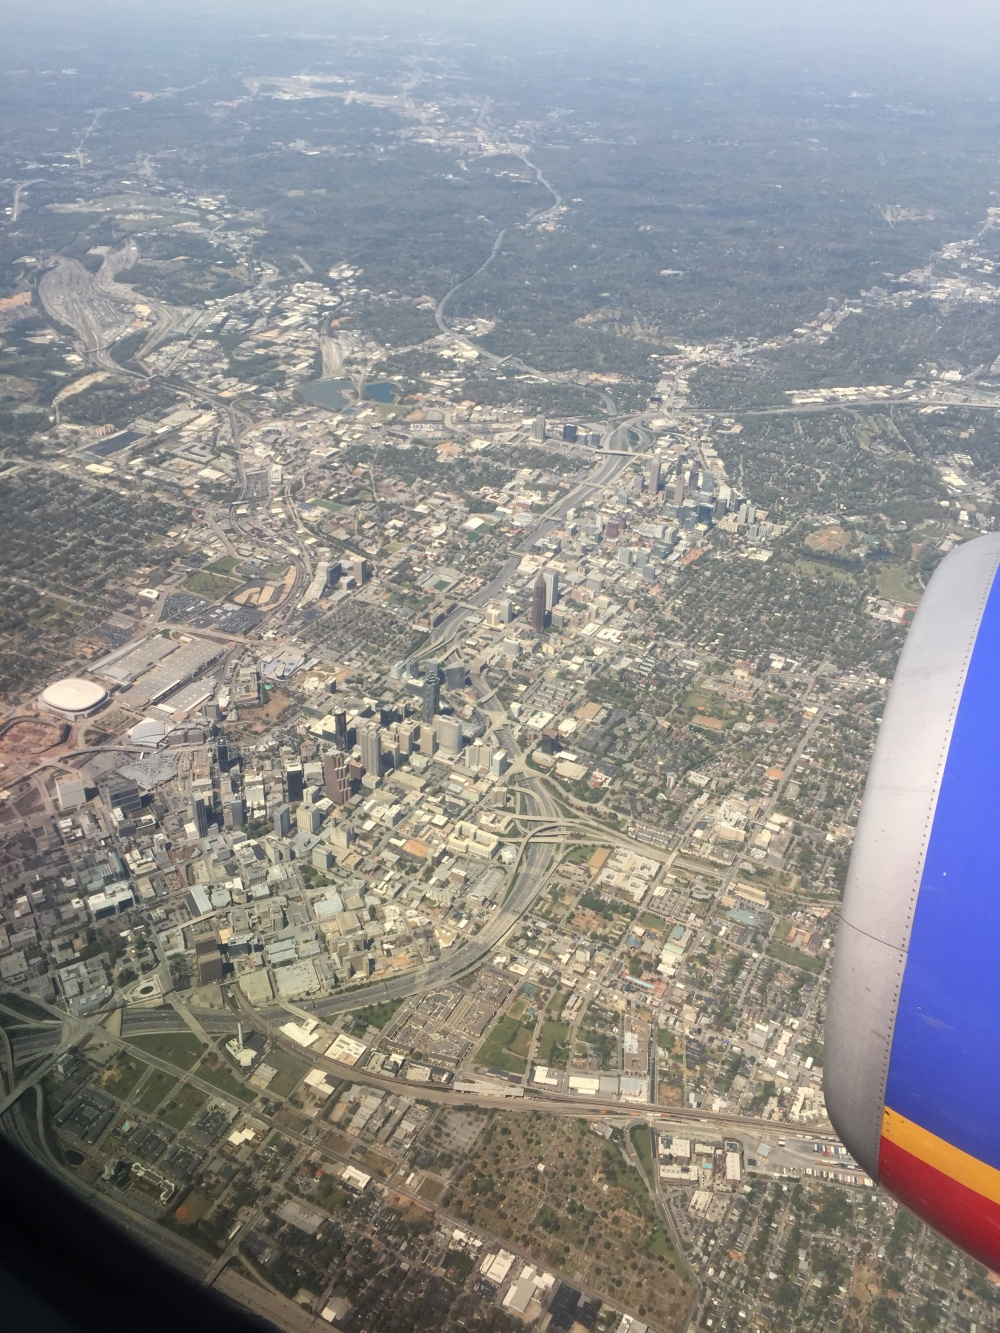 Overview of ATL